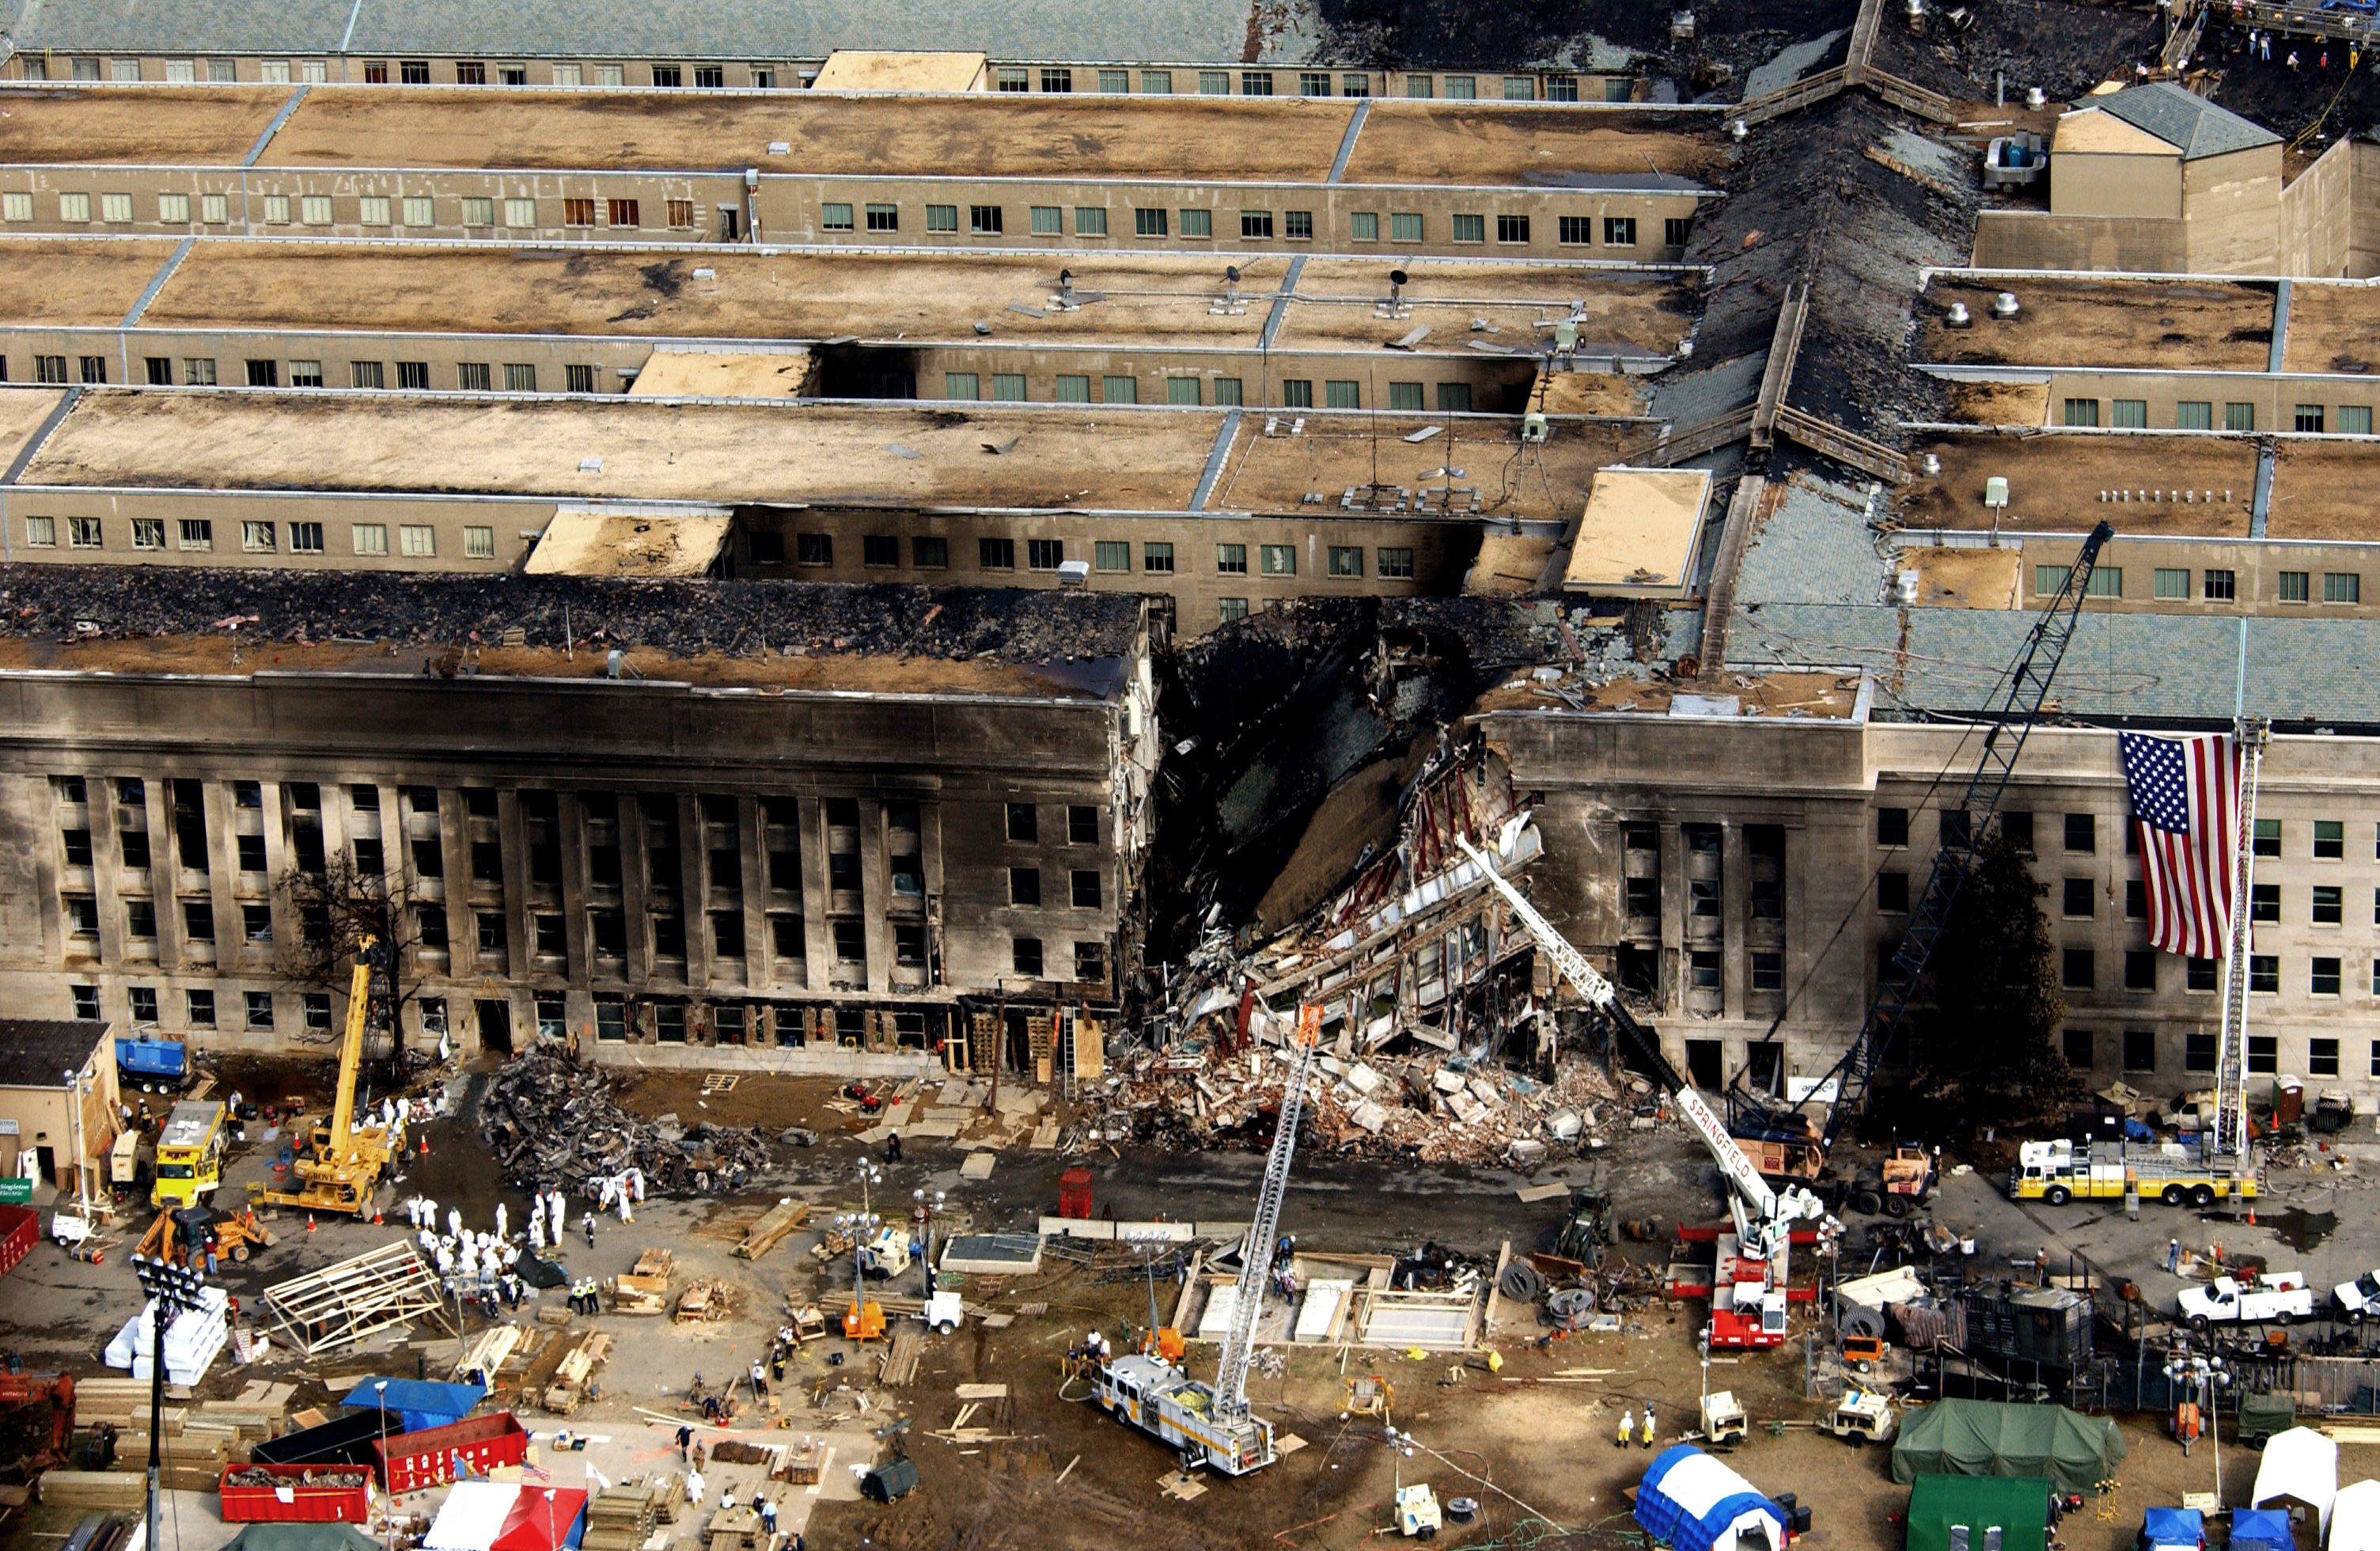 aerial_view_of_the_pentagon_during_rescue_operations_post-september_11_attack.JPEG